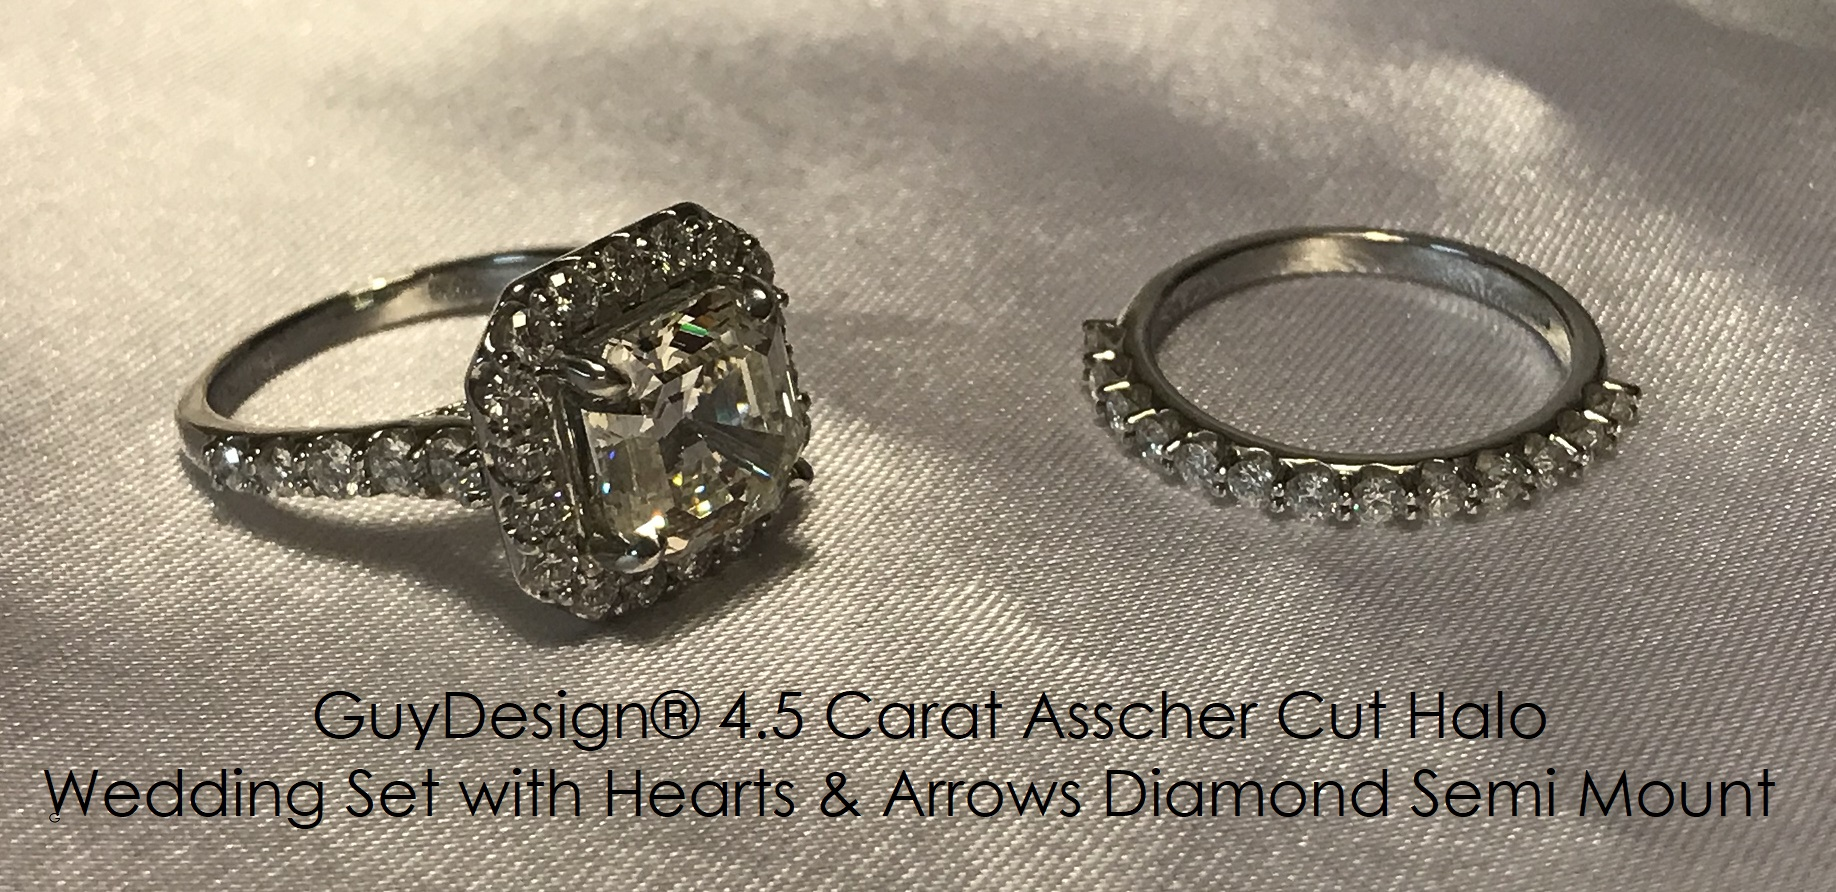 guydesign-4.5-carat-asscher-cut-set-with-hearts-and-arrows-semi-mount.jpg